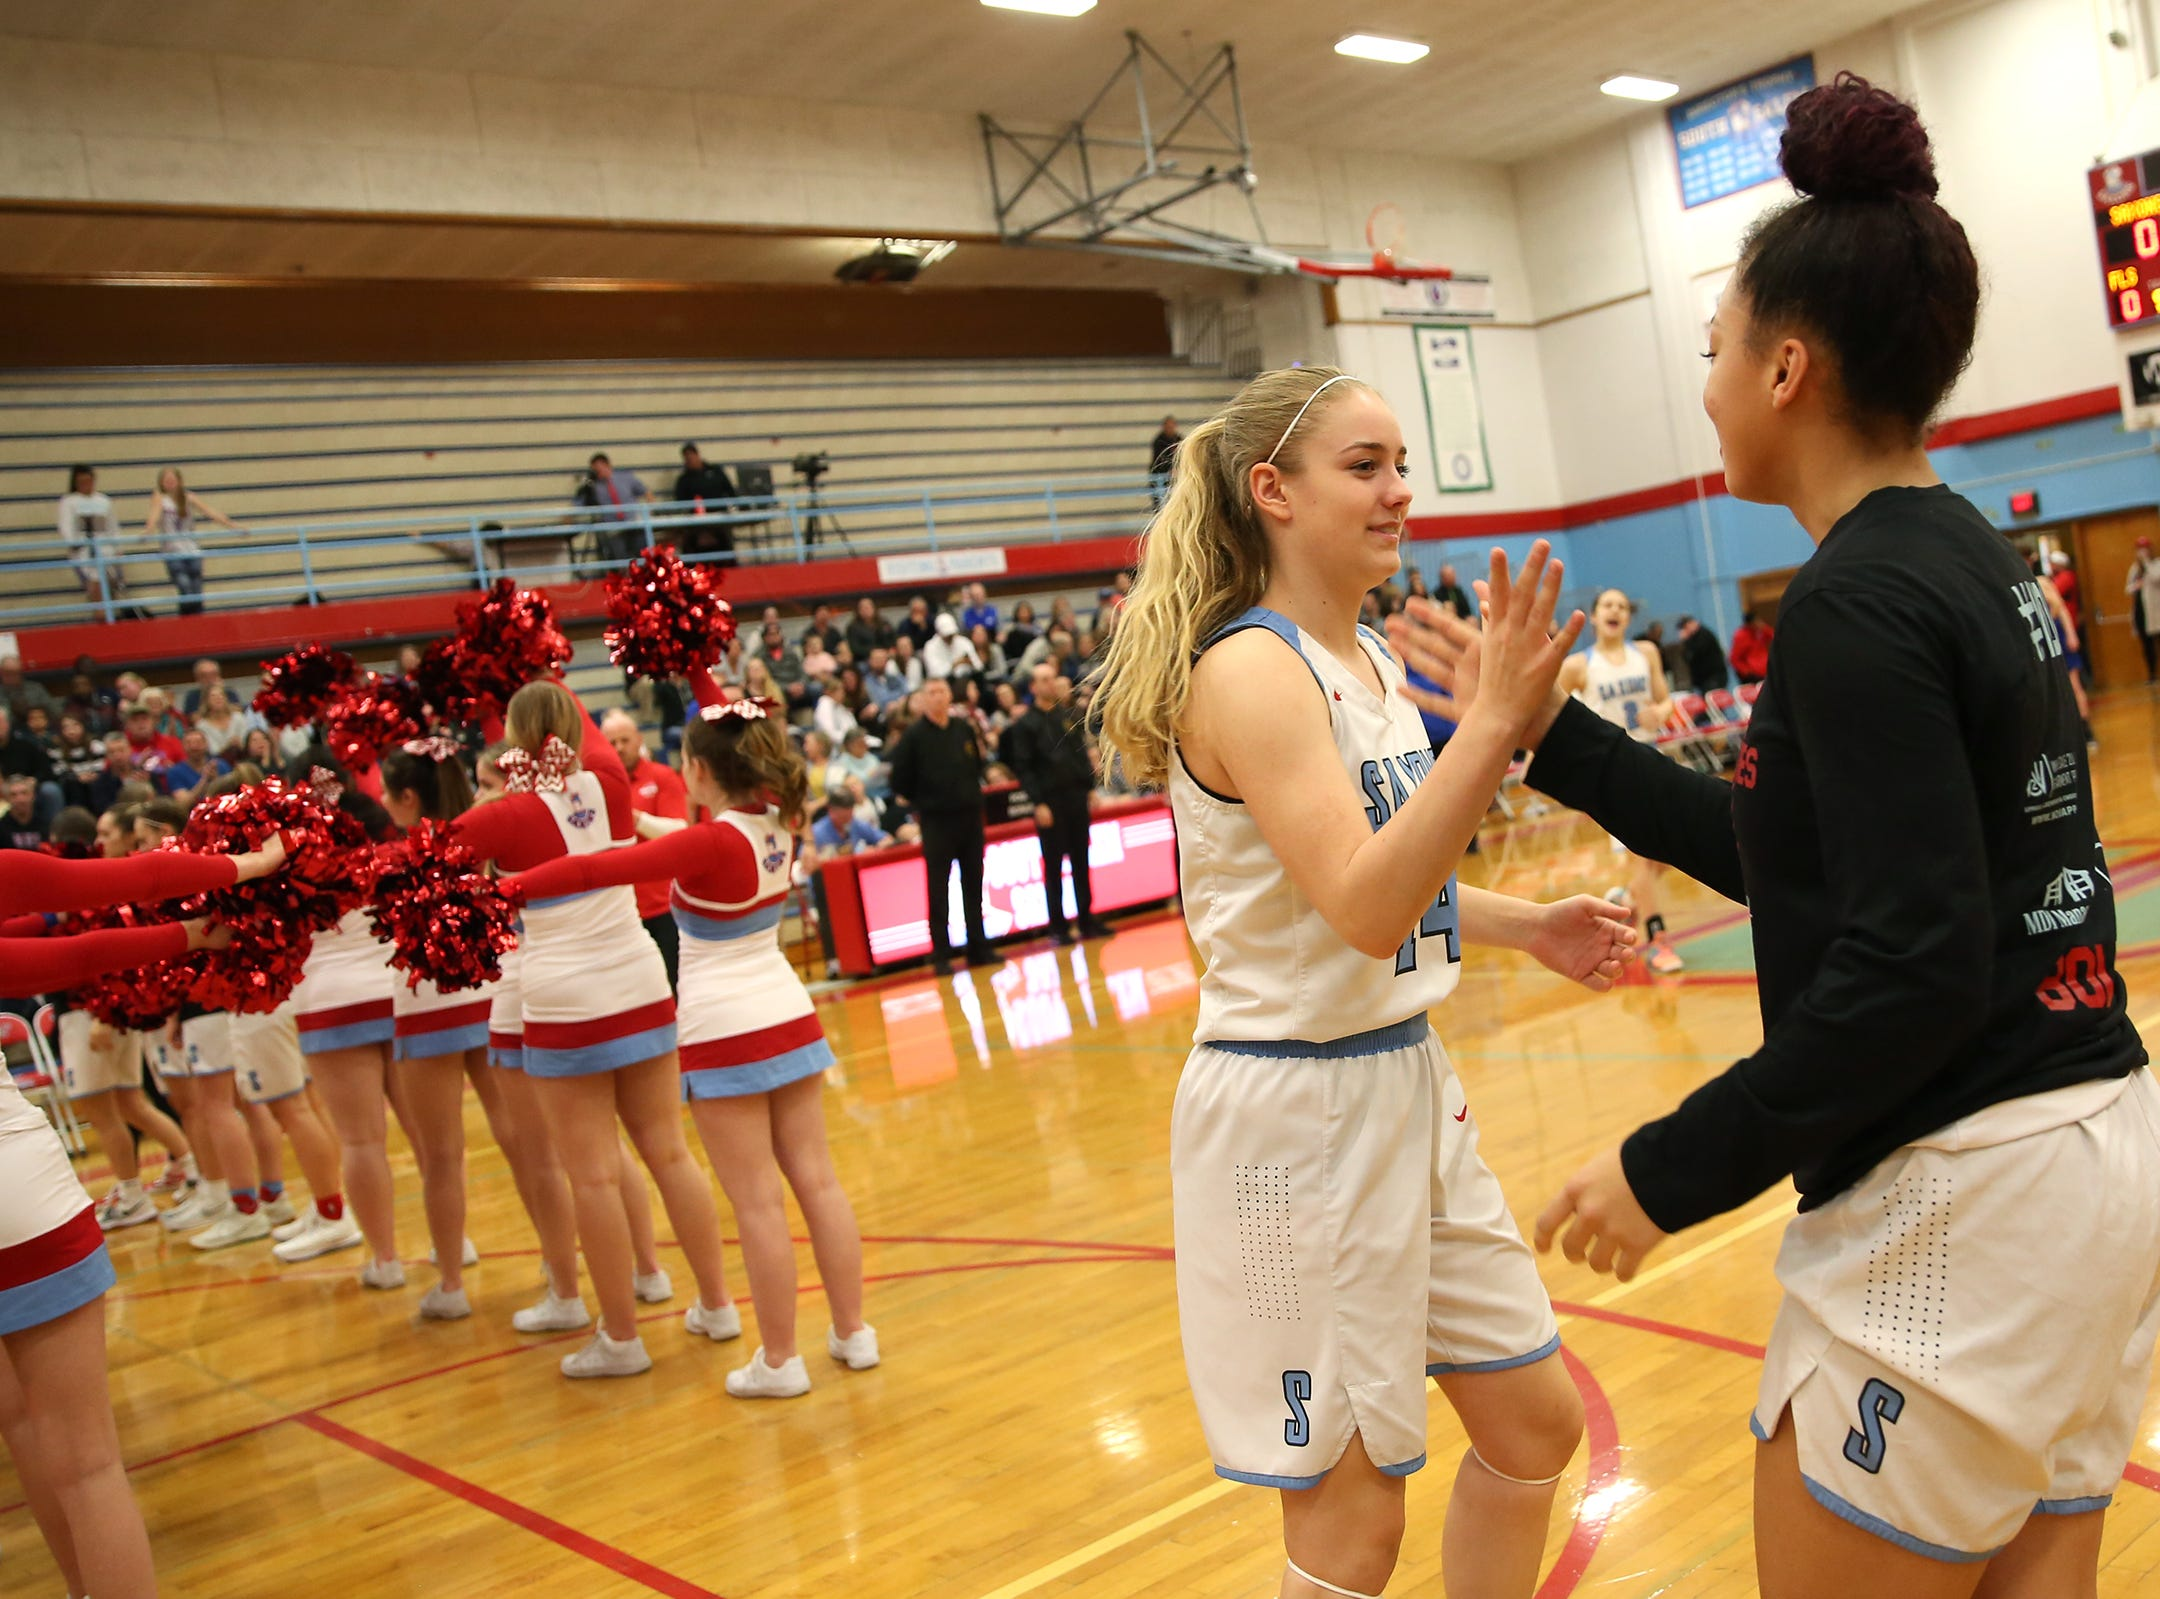 South Salem's Madelynn Hoffman (14) is introduced in the starting lineup before the South Salem High School girls basketball game against McNary High School in Salem on Thursday, Jan. 31, 2019.